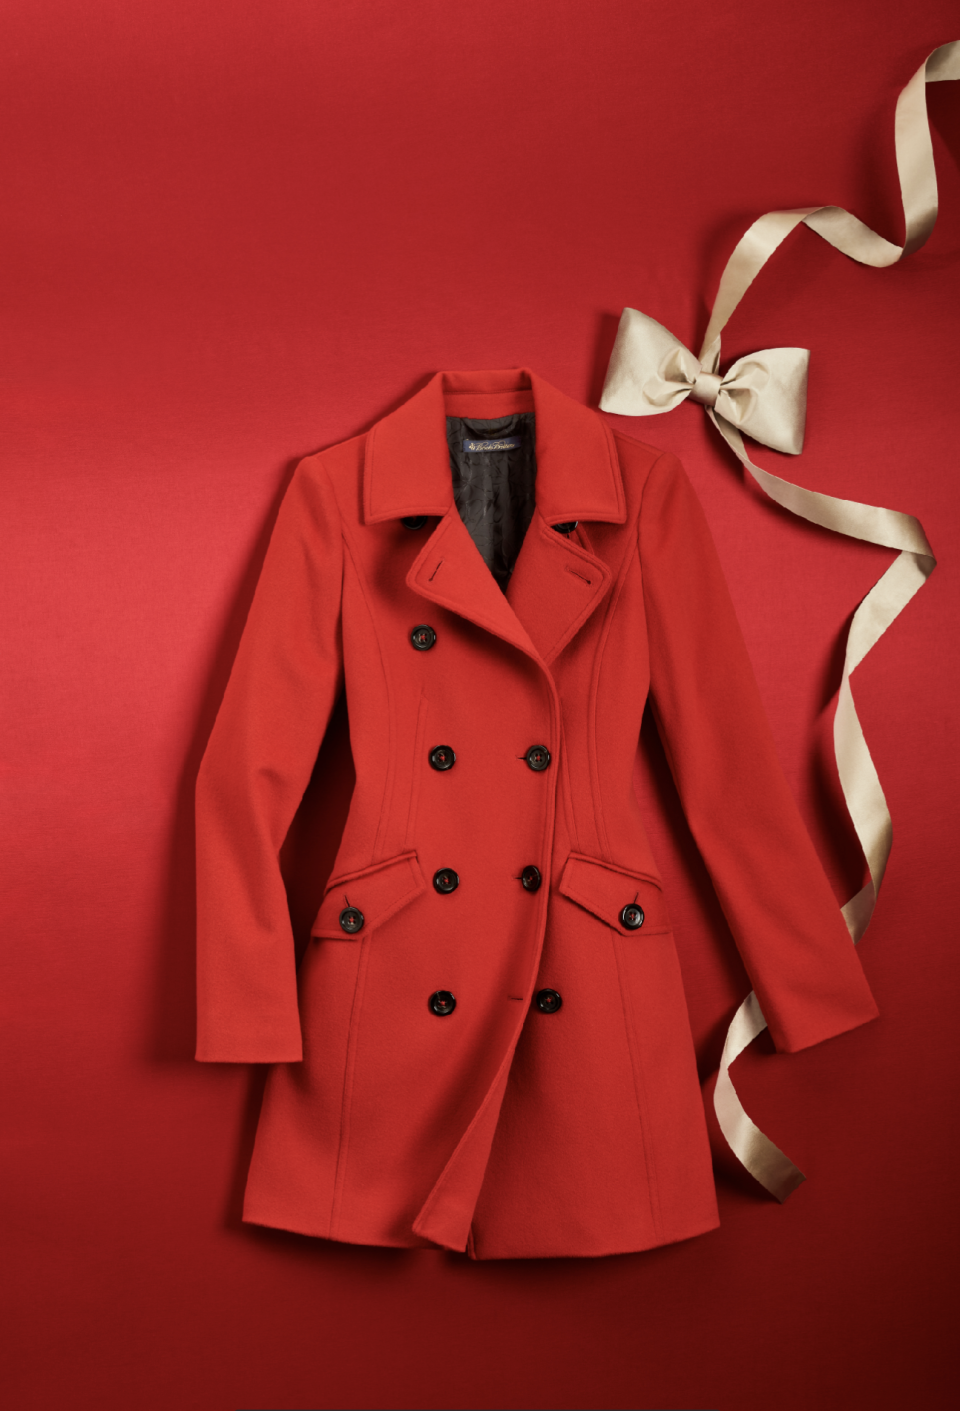 <p><span>Having a wintry Christmas? Stay warm in this gorgeous red peacoat that's bound to make heads turn. </span> </p>